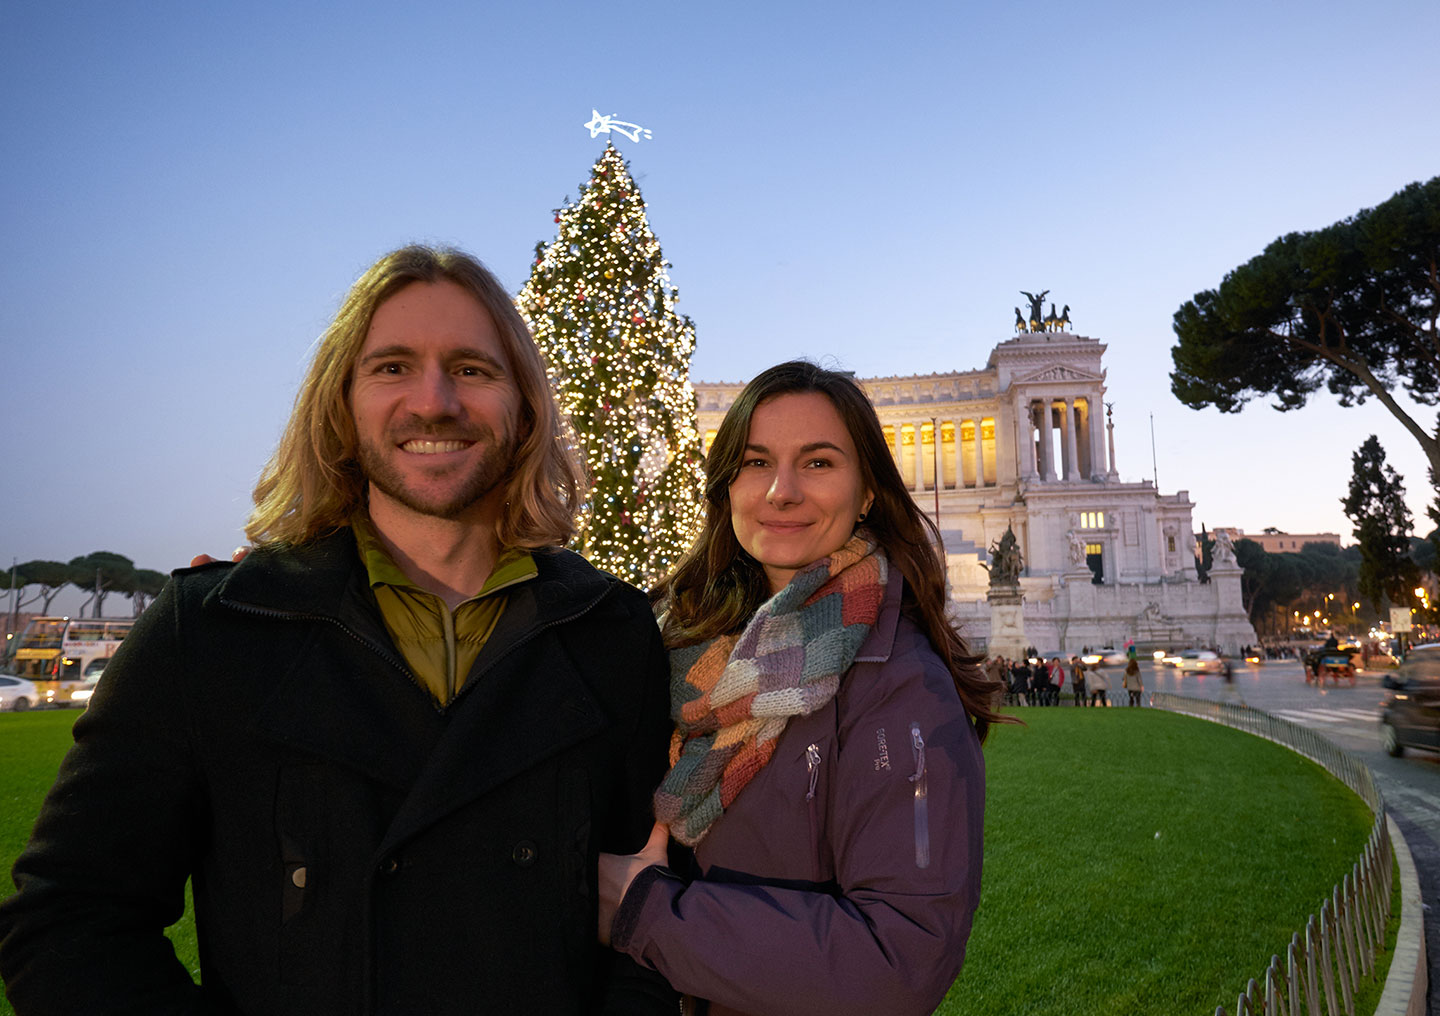 Merry Christmas from Roma!